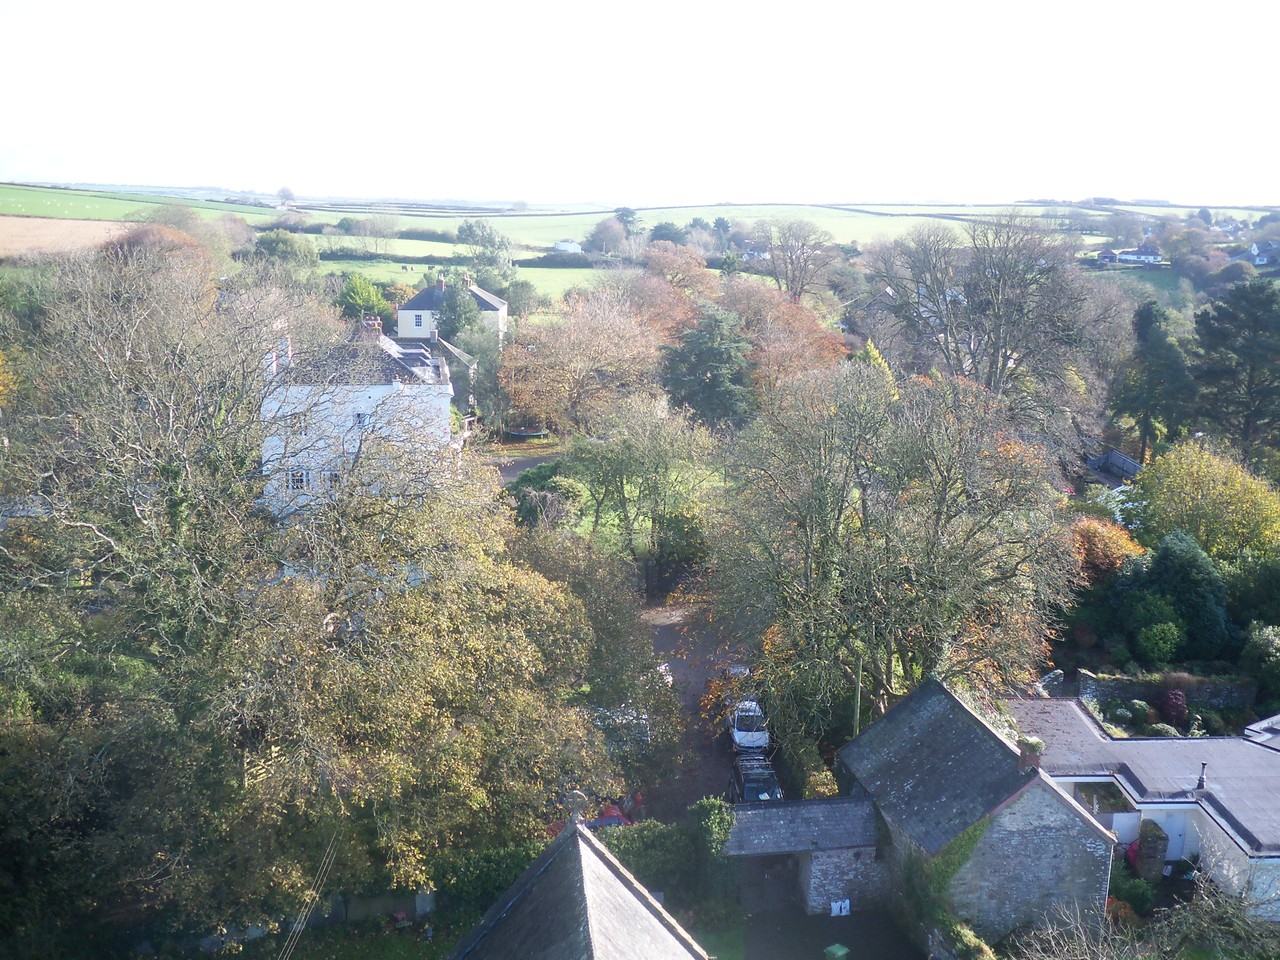 View from the Church tower, Nov '11